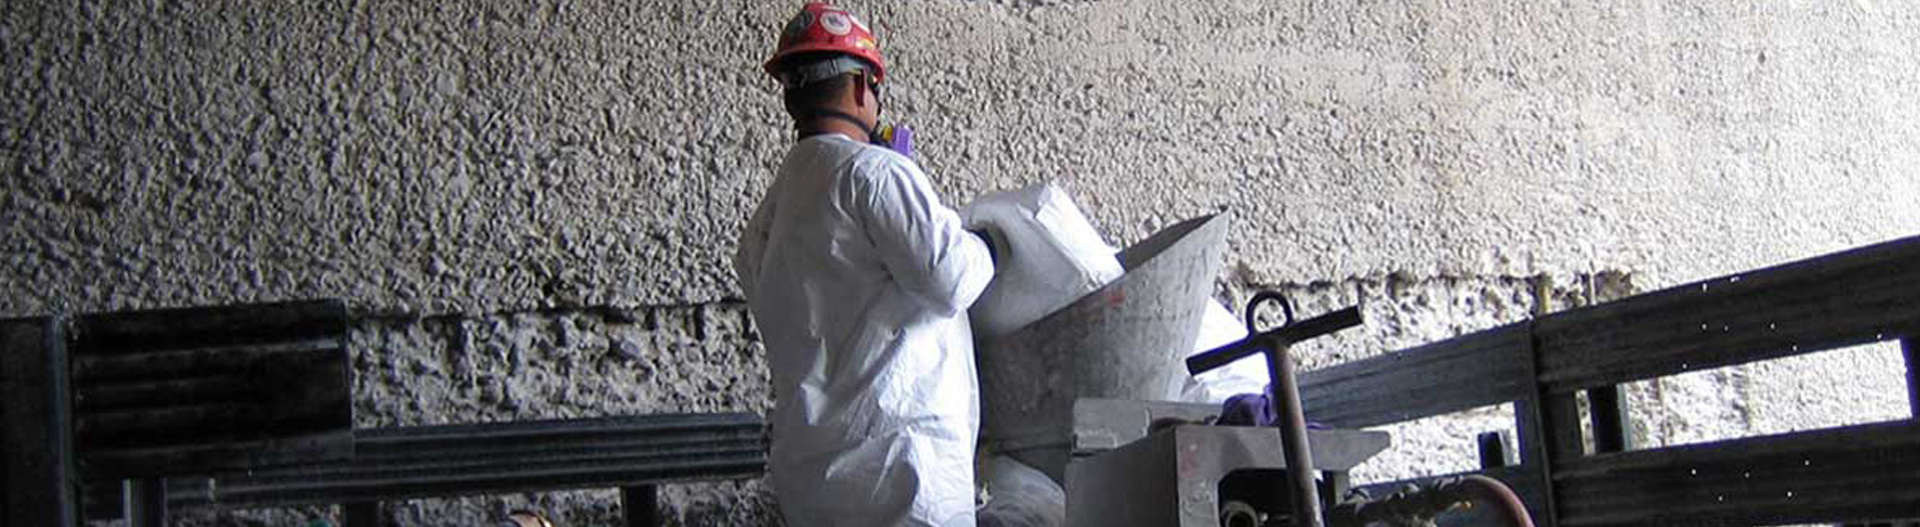 US Concrete Products | Concretes for Commercial Applications